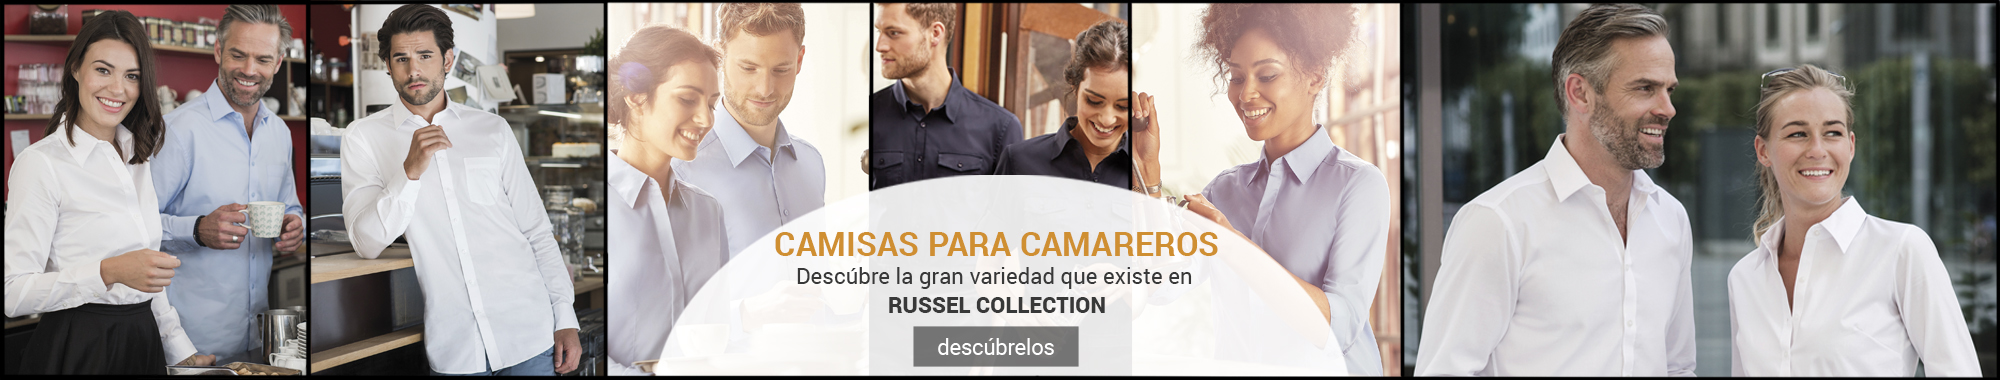 Camisas de RUSSELL COLLECTION